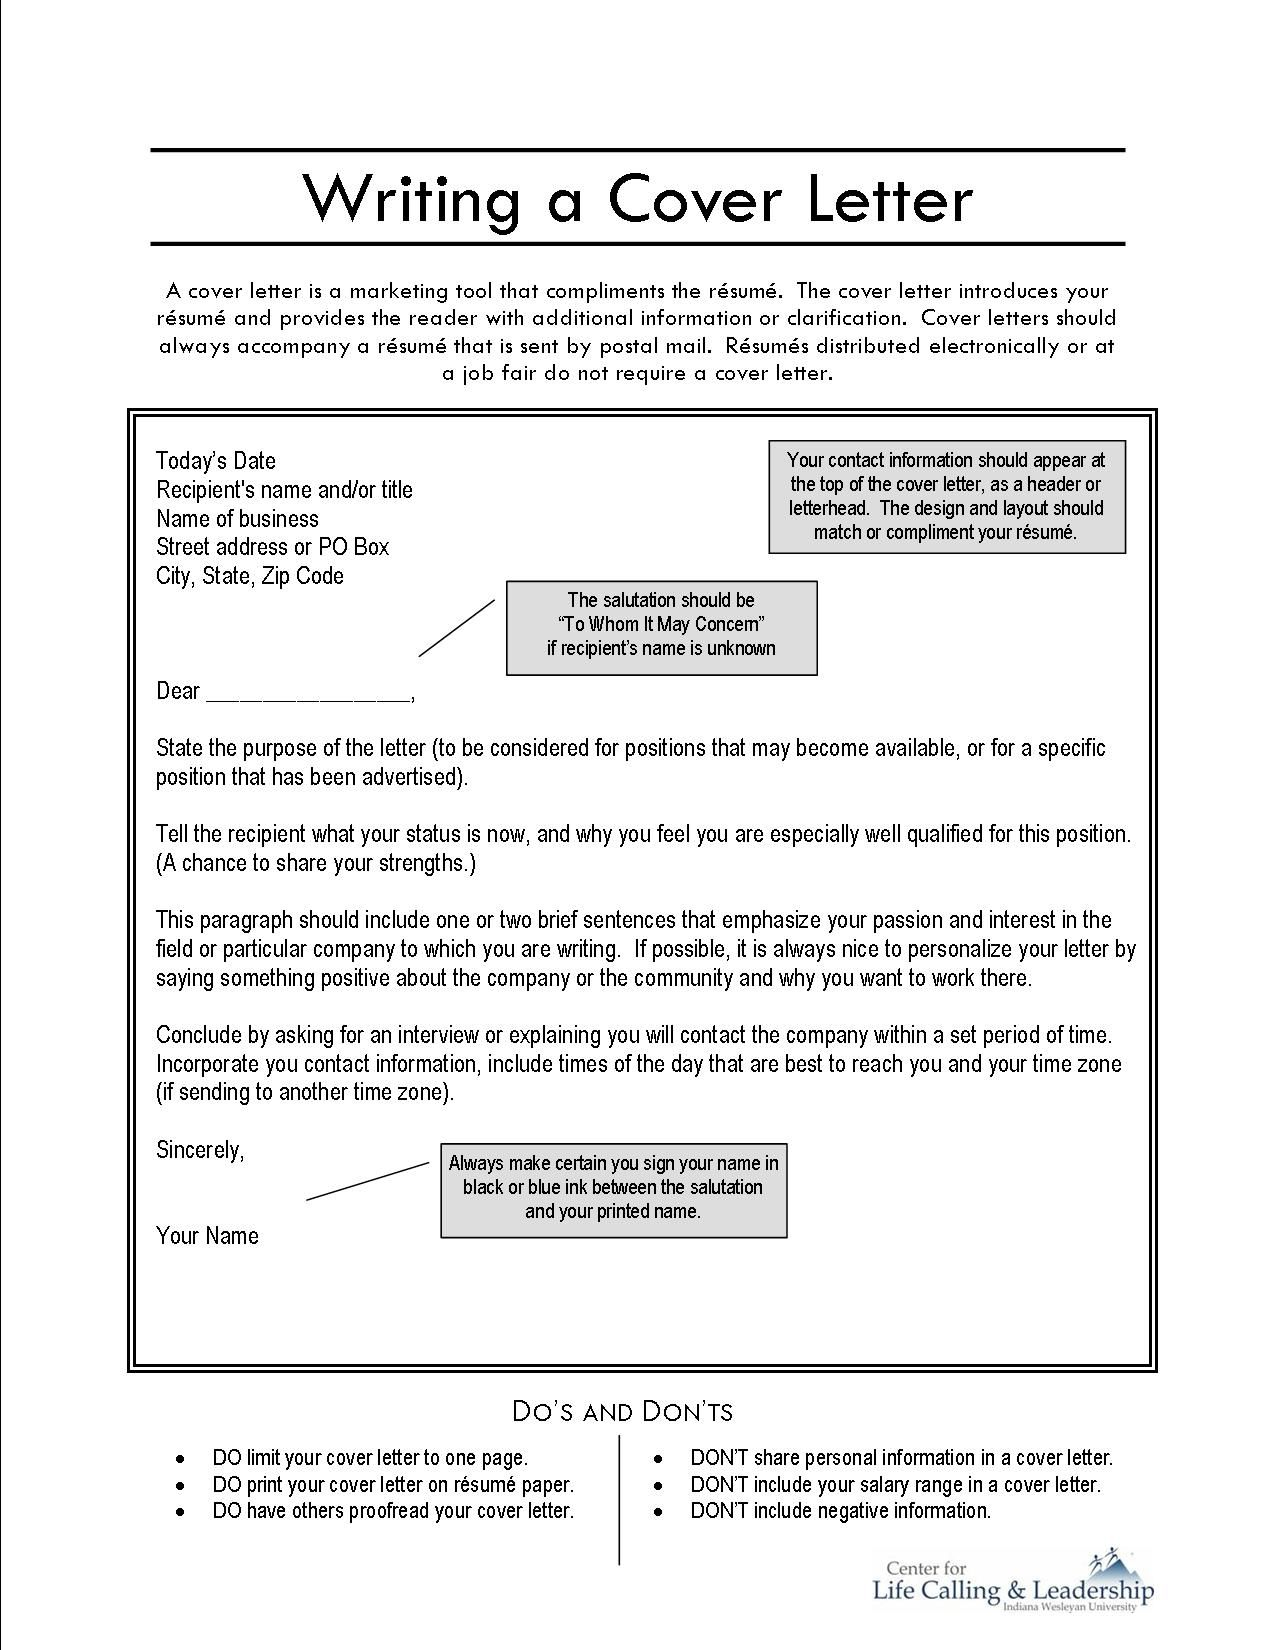 Writing a Cover Letter Job Application Resources